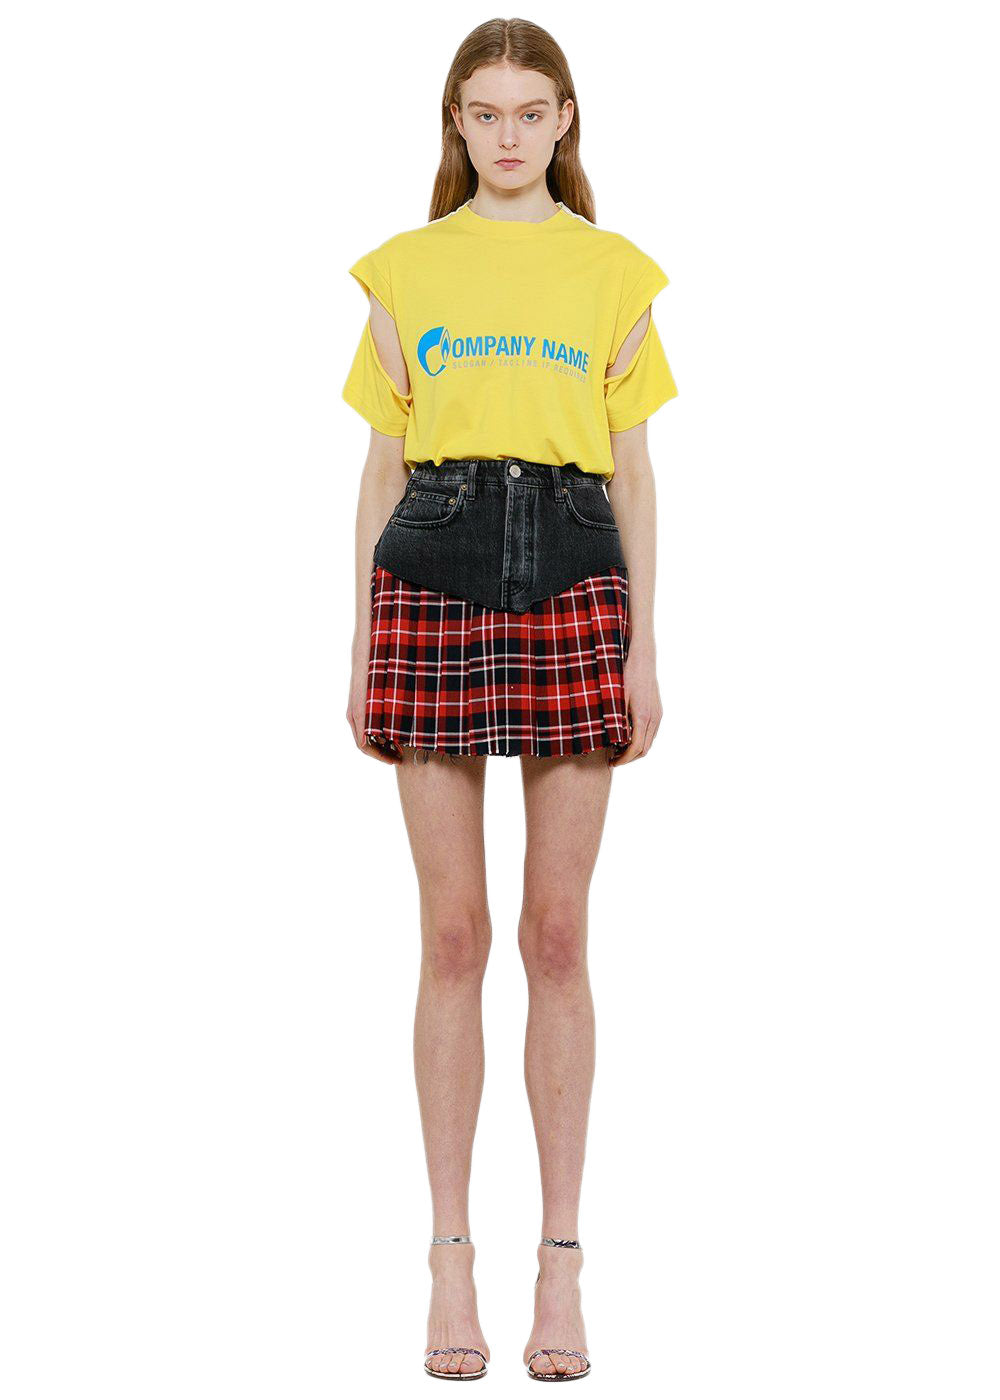 Black Pleated School Girl Skirt